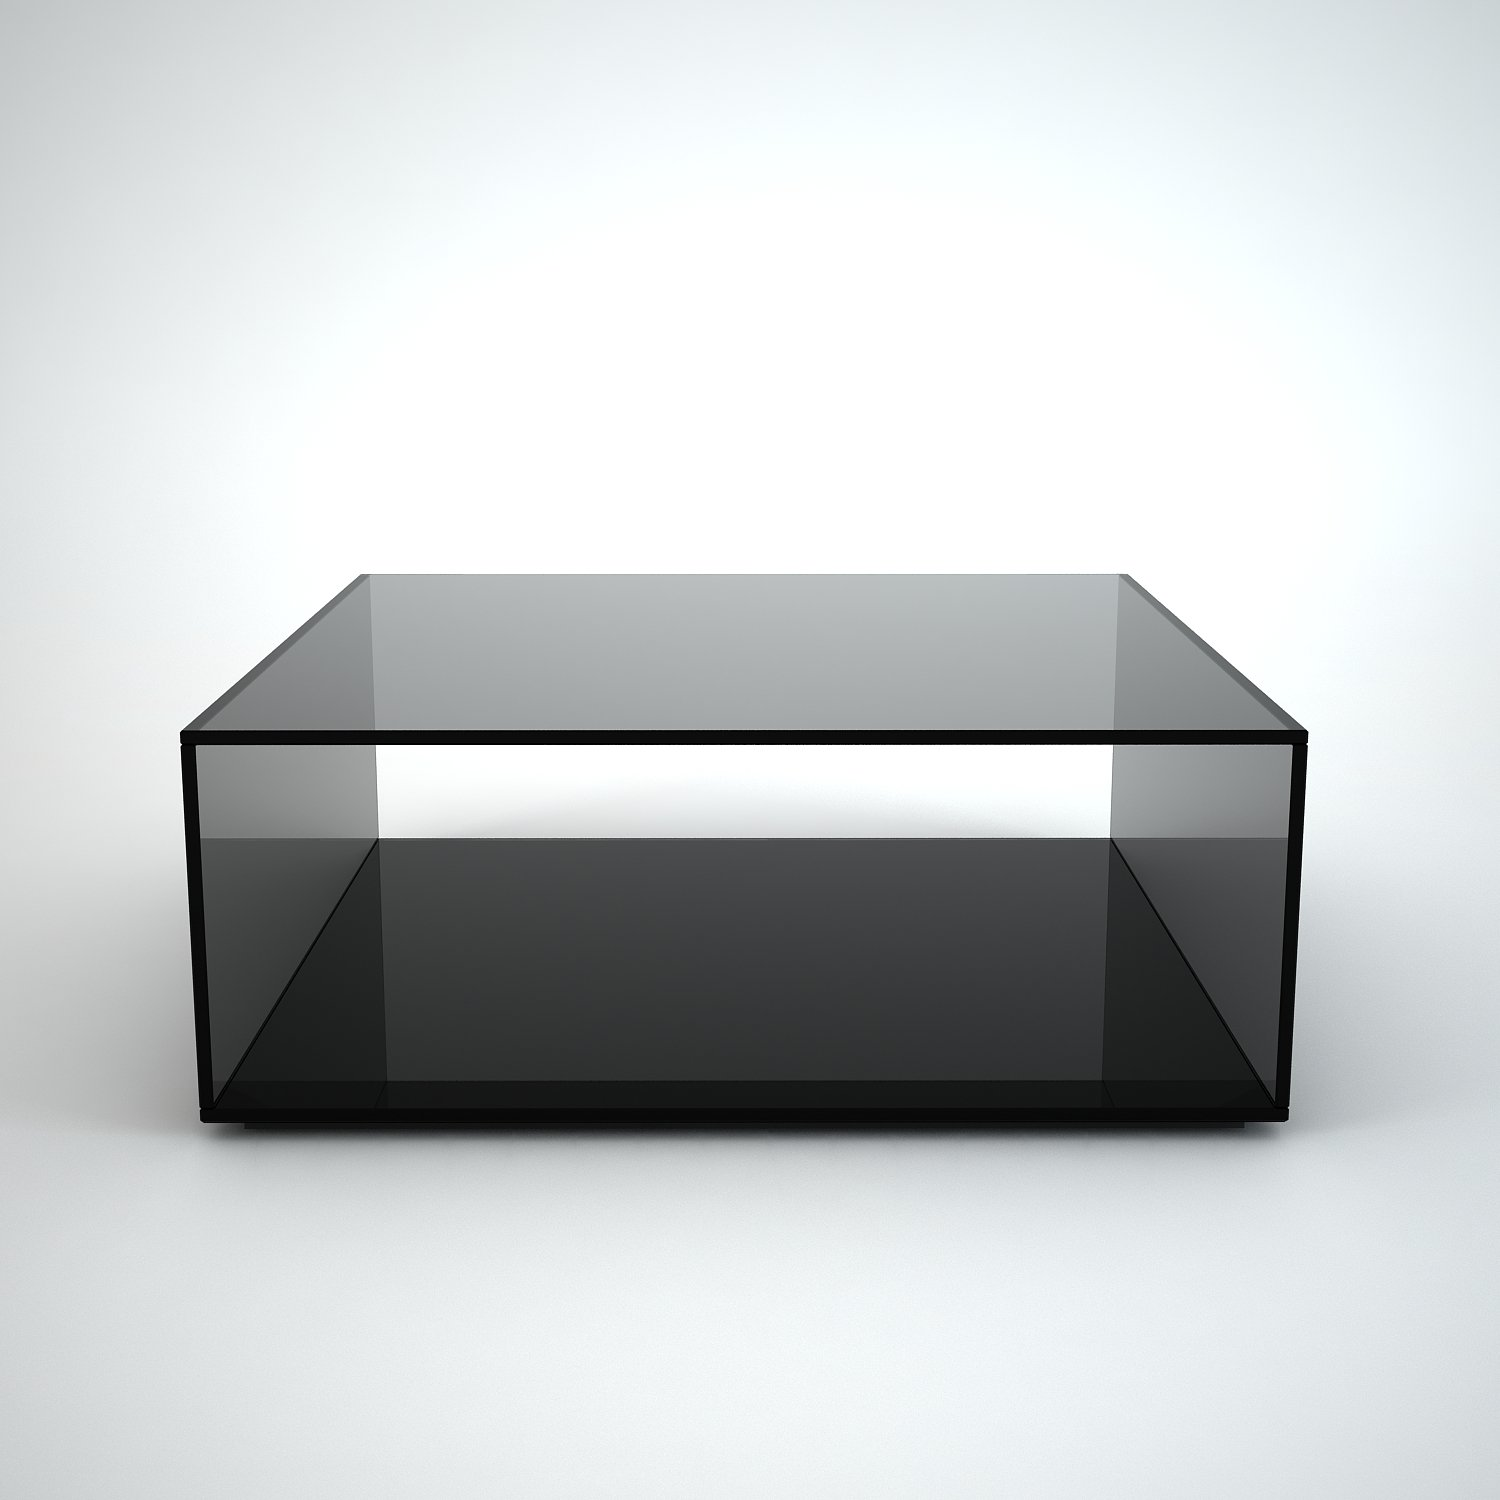 Quebec Square Grey Tint Glass Coffee Table by Klarity Klarity